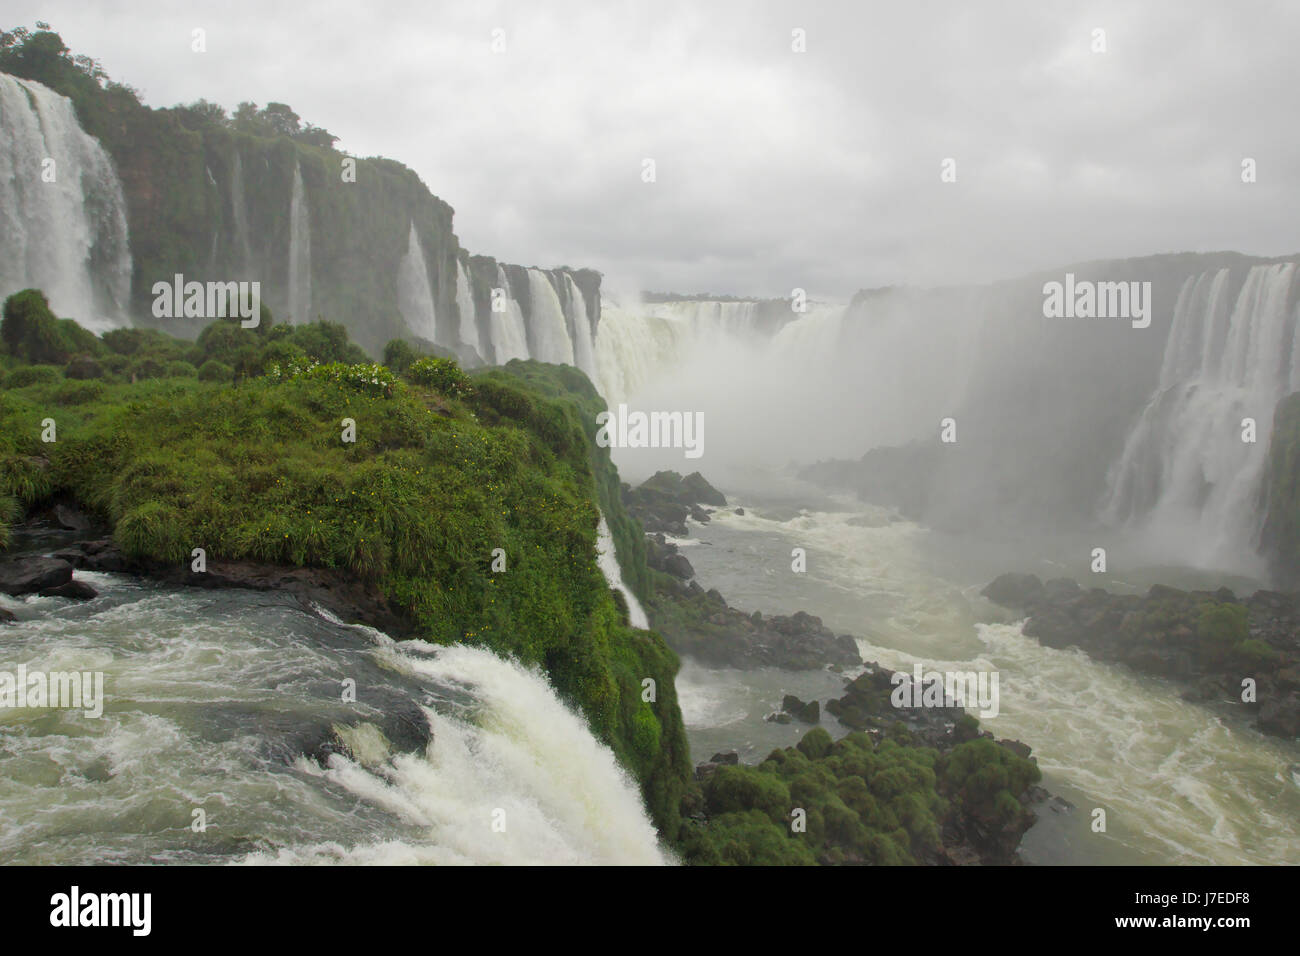 Iguazu Falls, Brazilian Falls from walkway near Devil's throat, Brazil - Stock Image